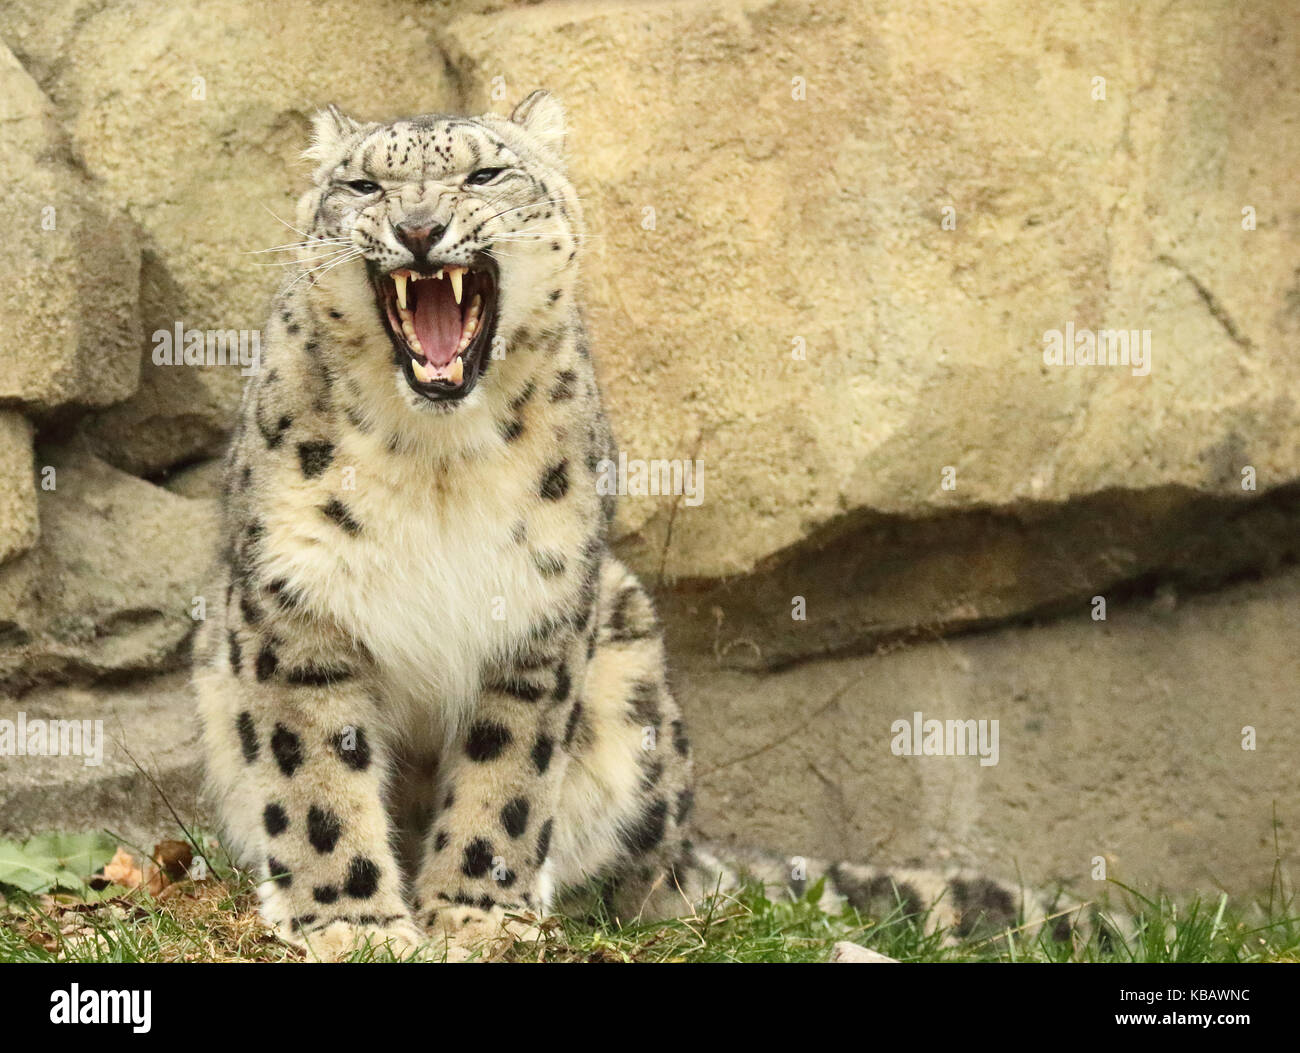 A Snow Leopard snarling in warning. - Stock Image